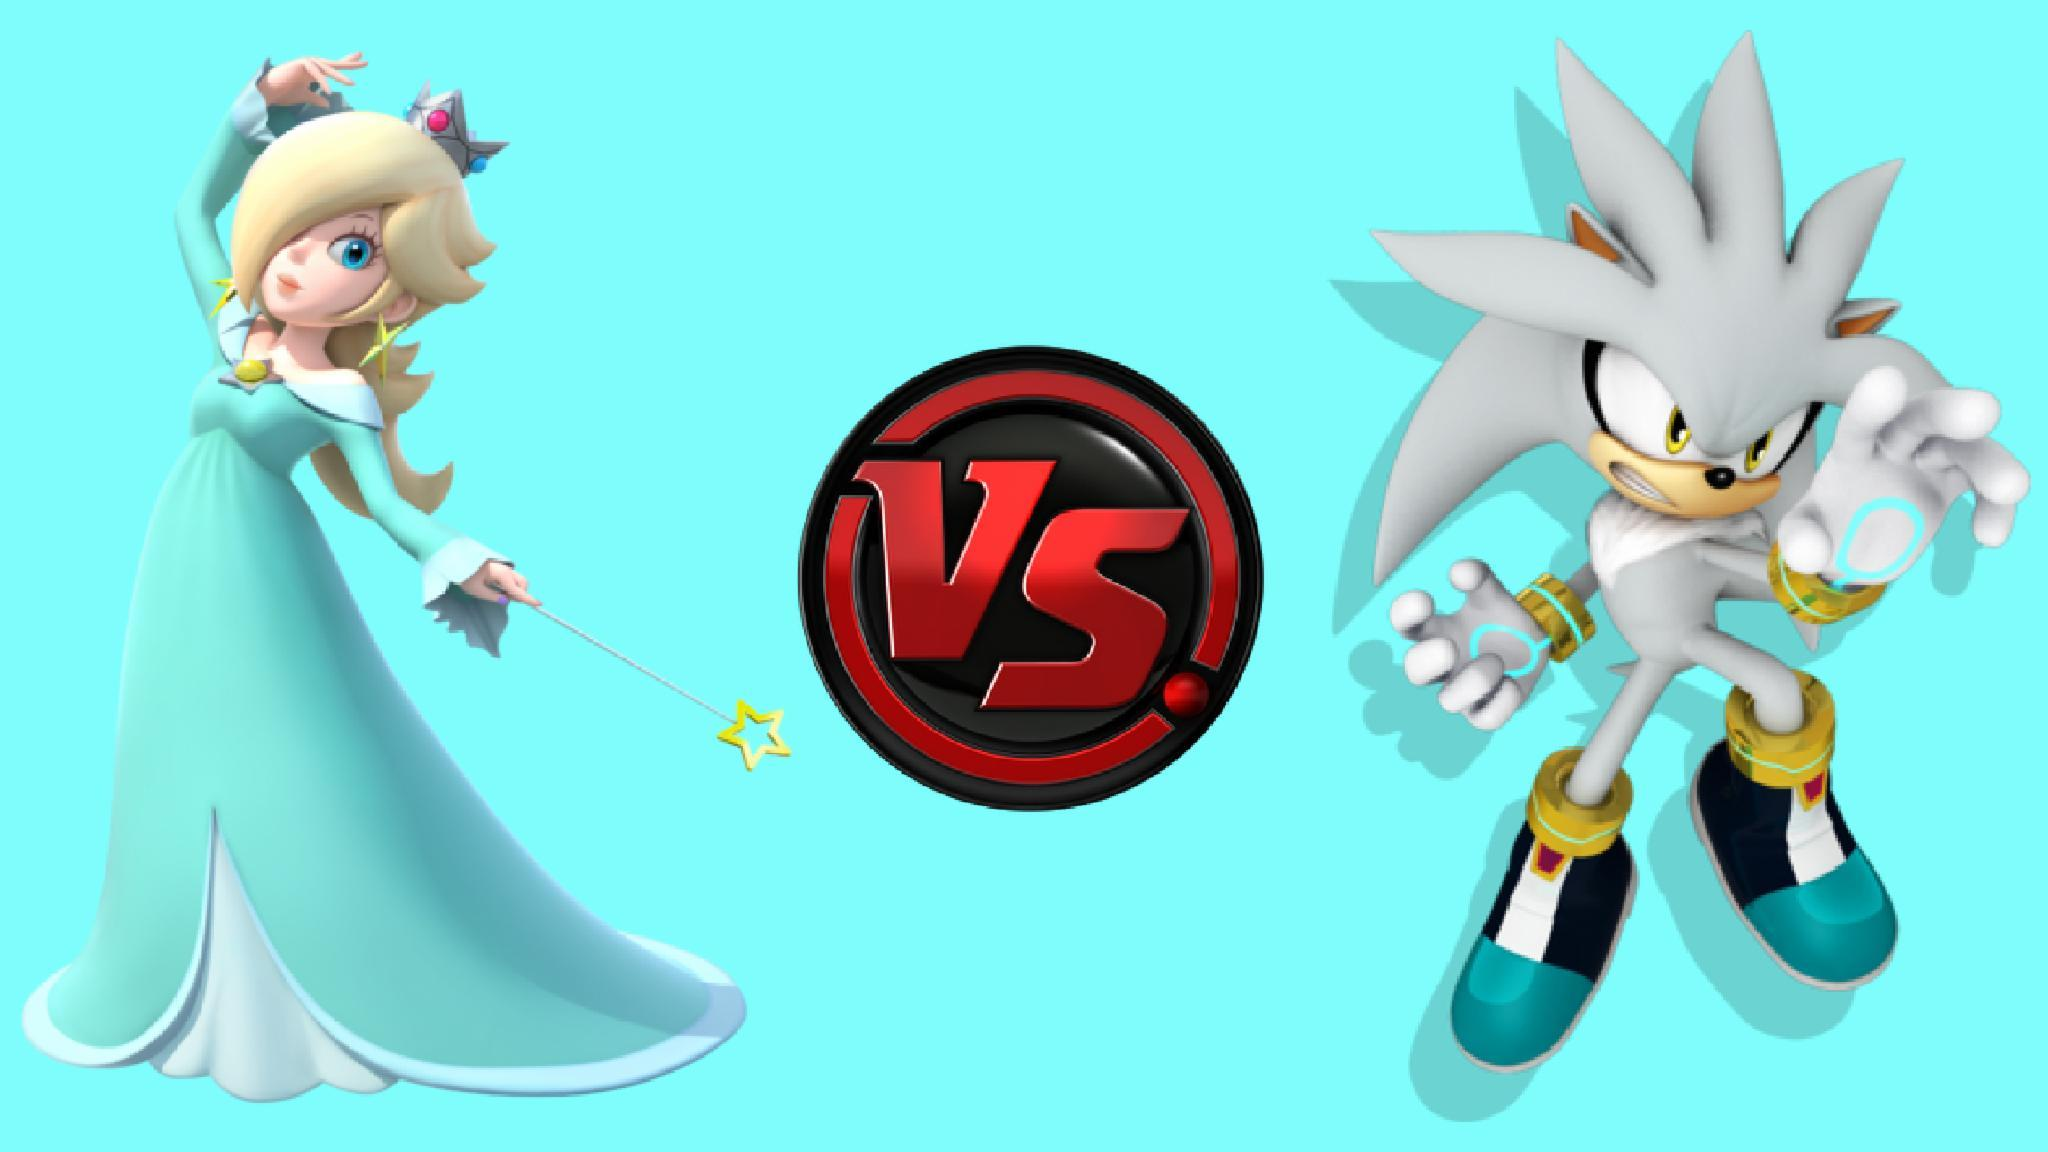 Rosalina vs Silver the Hedgehog